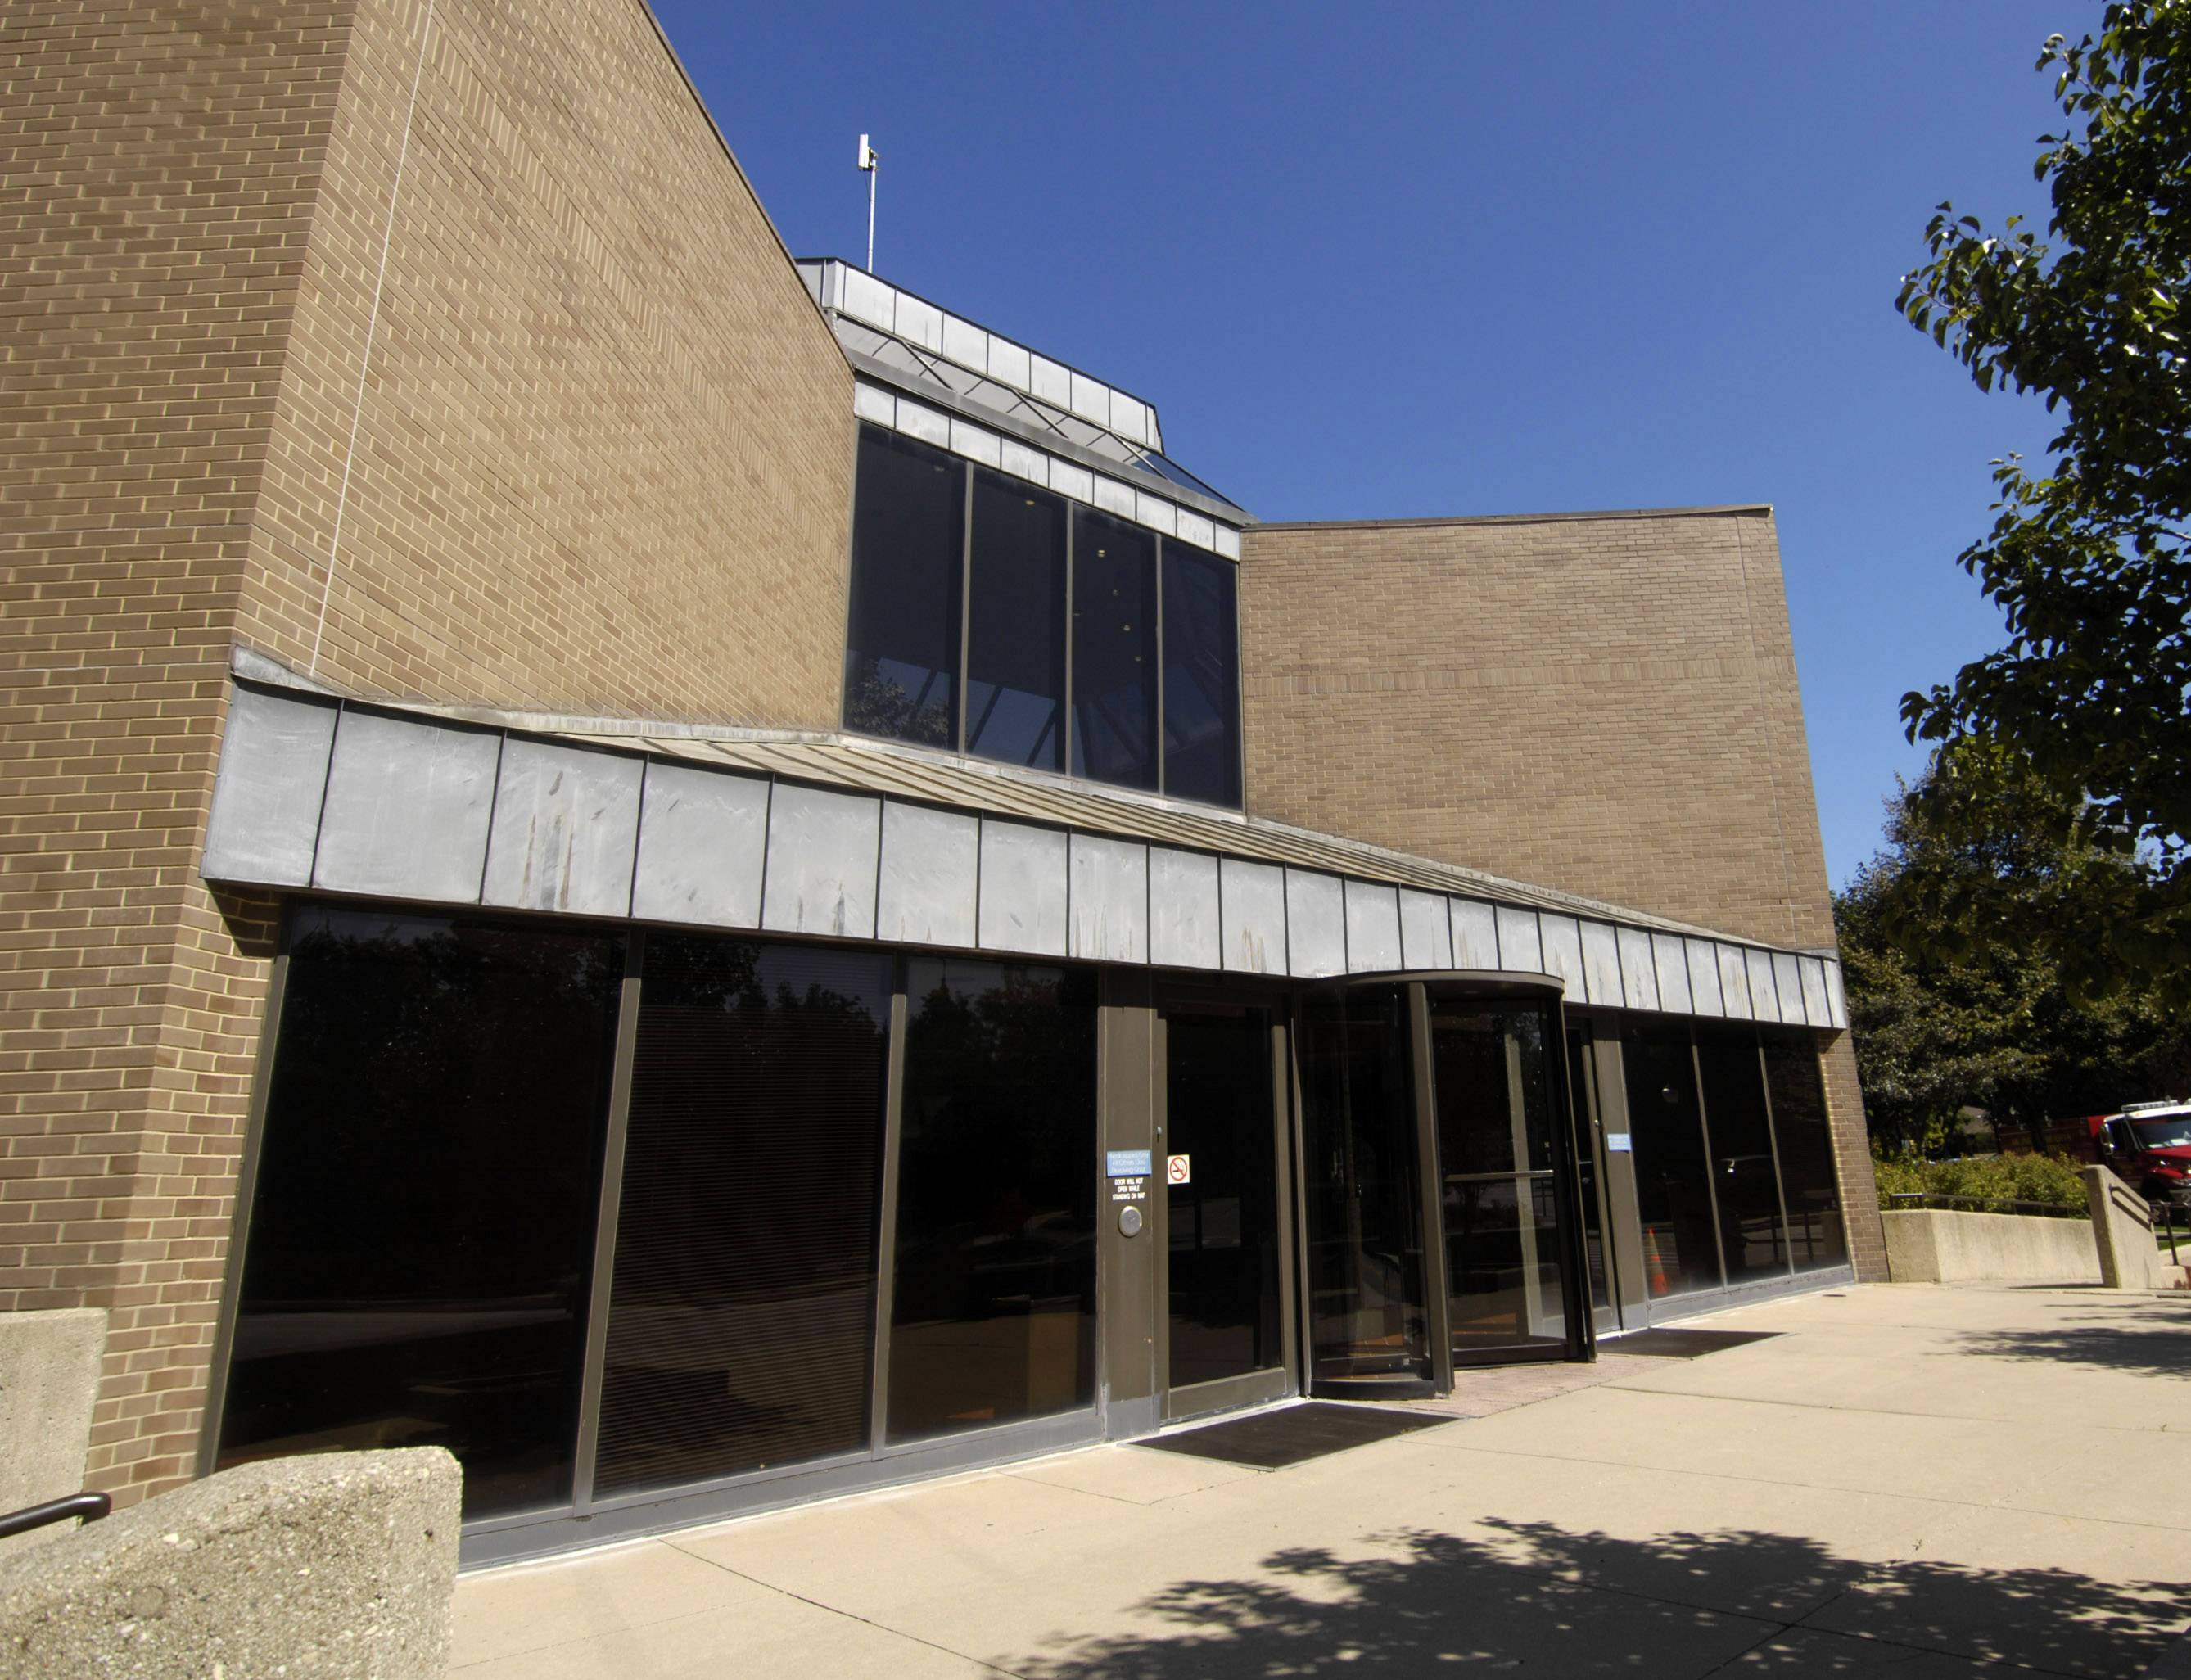 Arlington Hts. police station update due in December